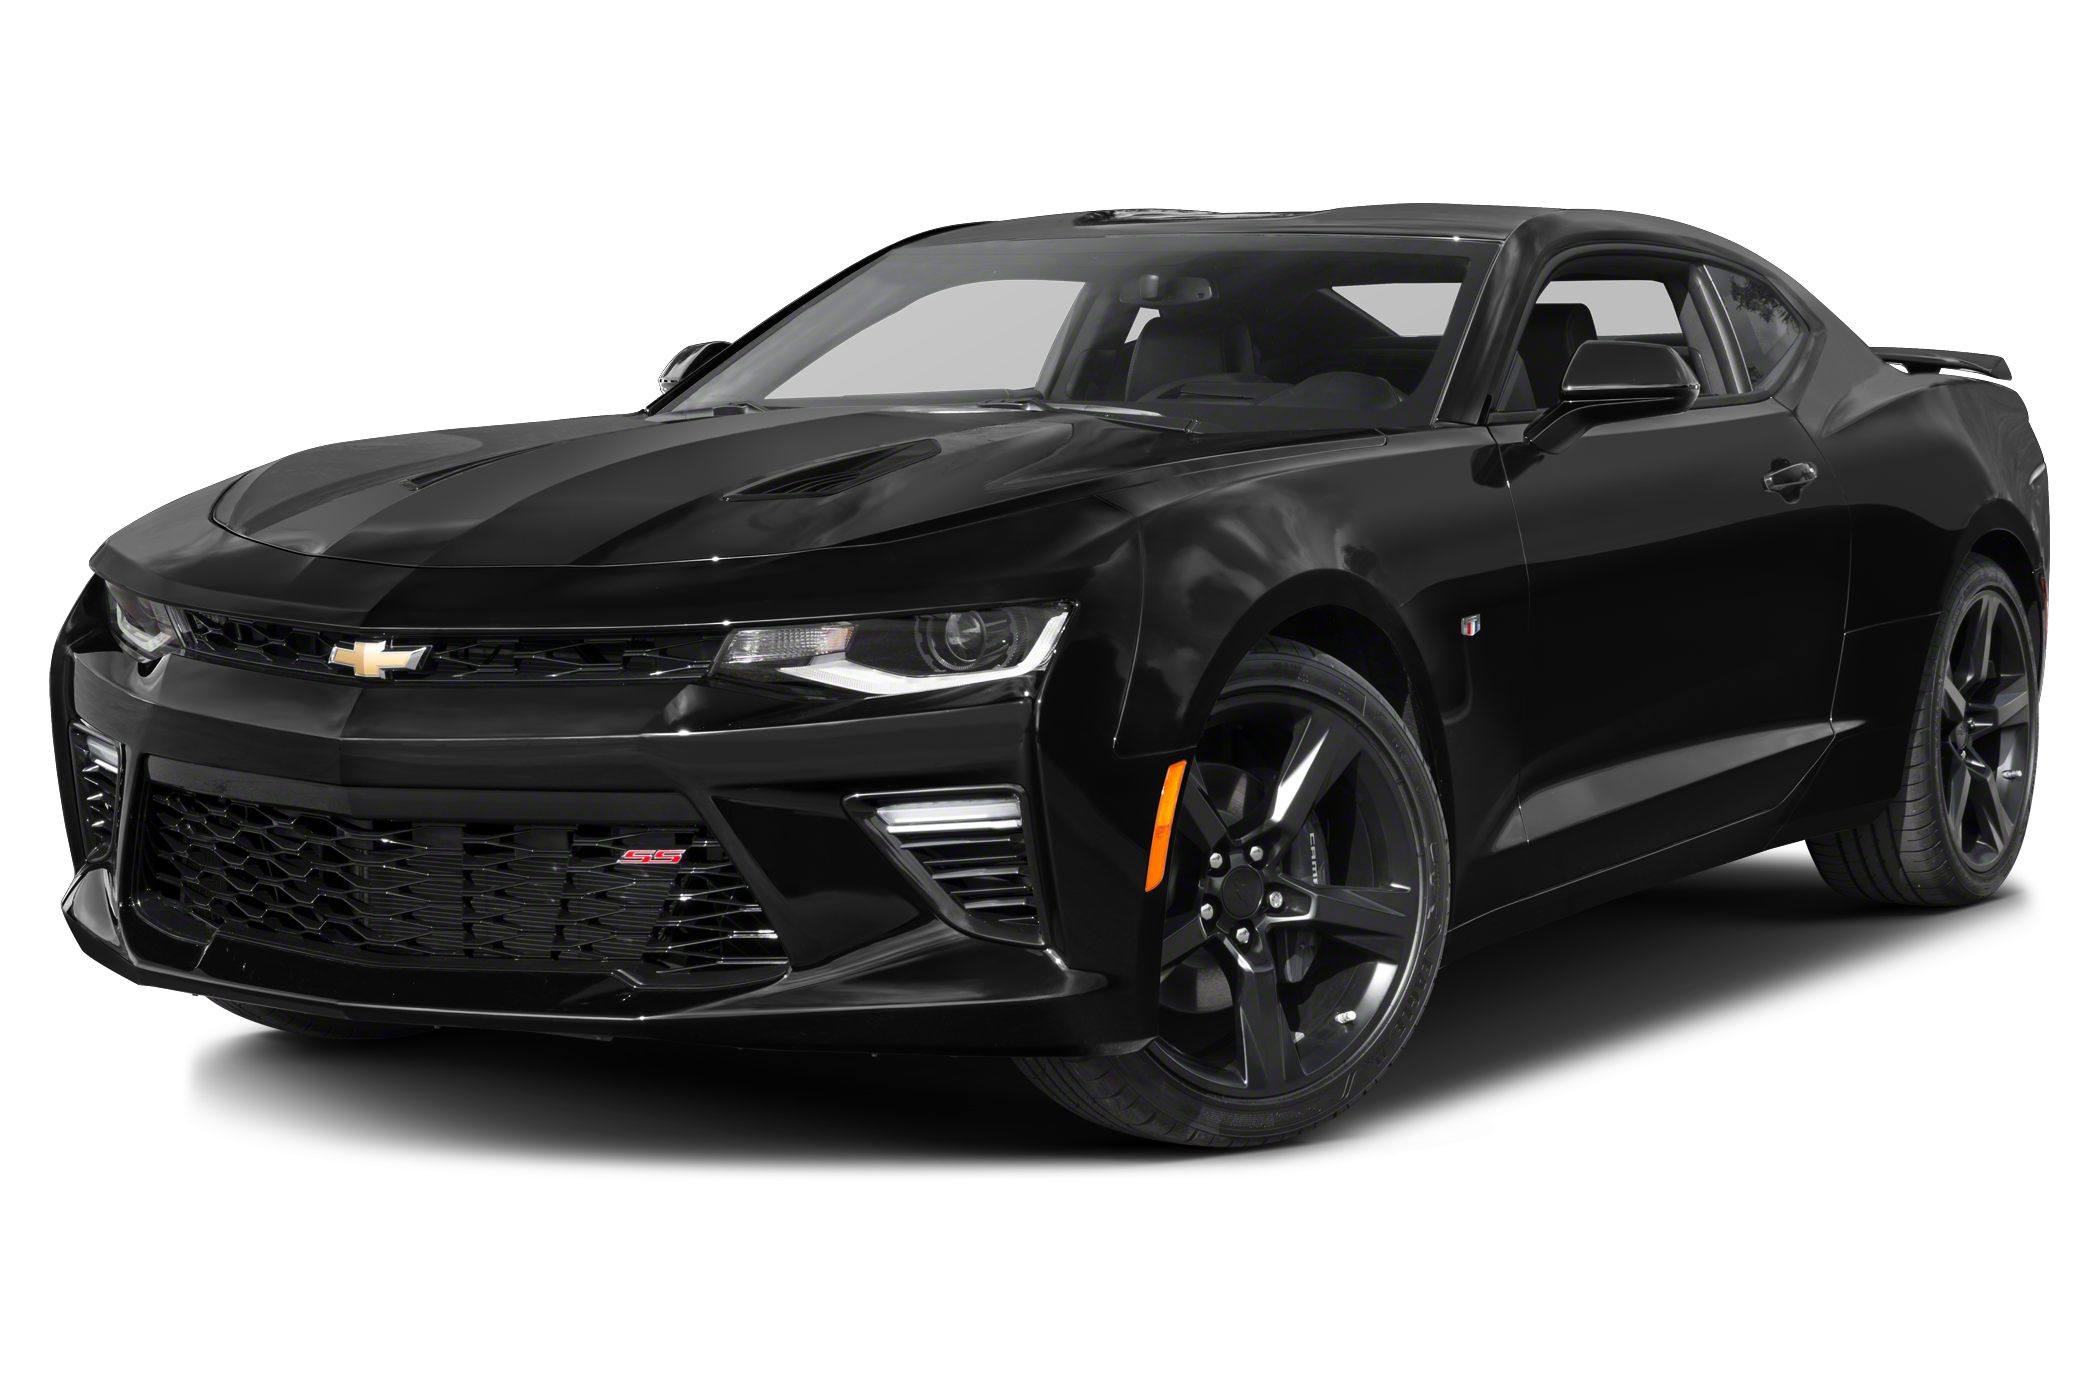 2017 chevrolet camaro deals prices incentives leases overview carsdirect. Black Bedroom Furniture Sets. Home Design Ideas